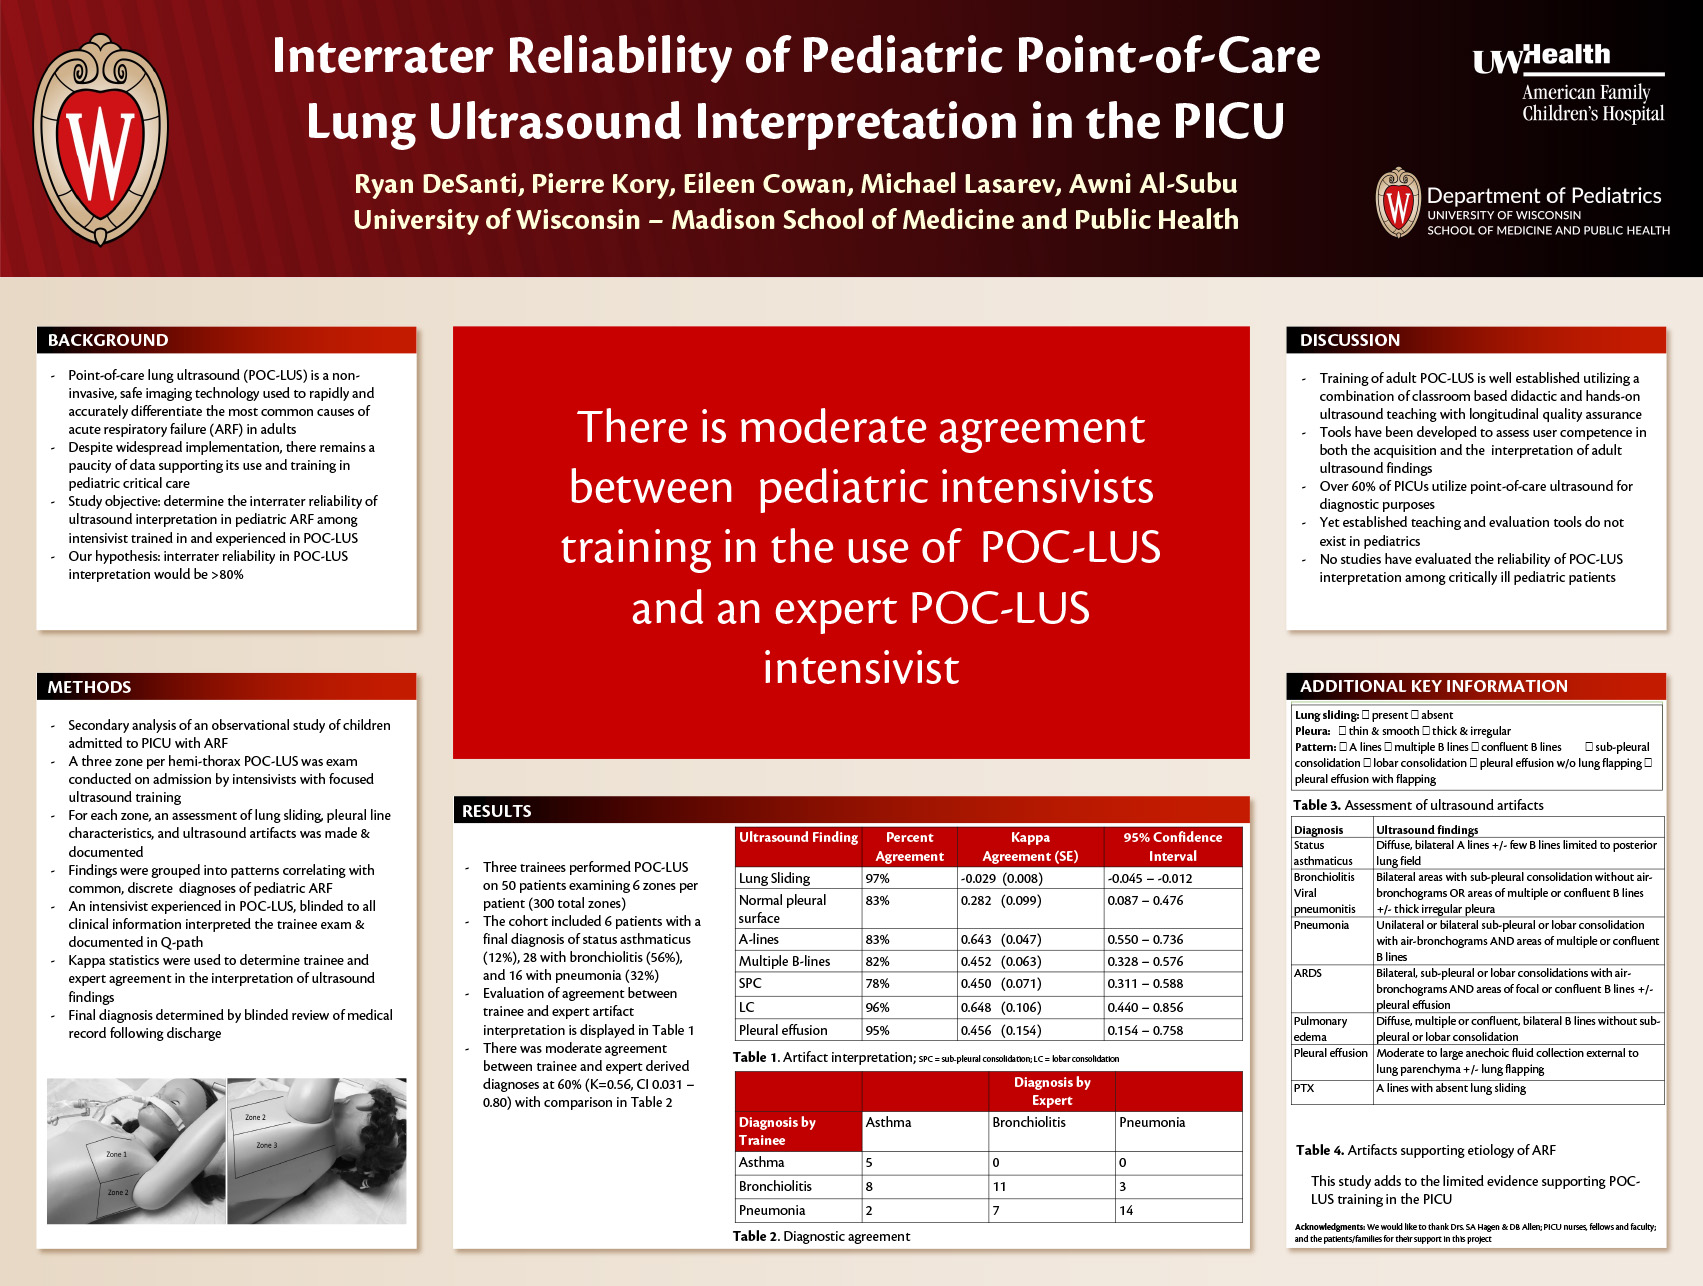 Inter-rater reliability of pediatric point-of-care lung ultrasound in the PICU poster image